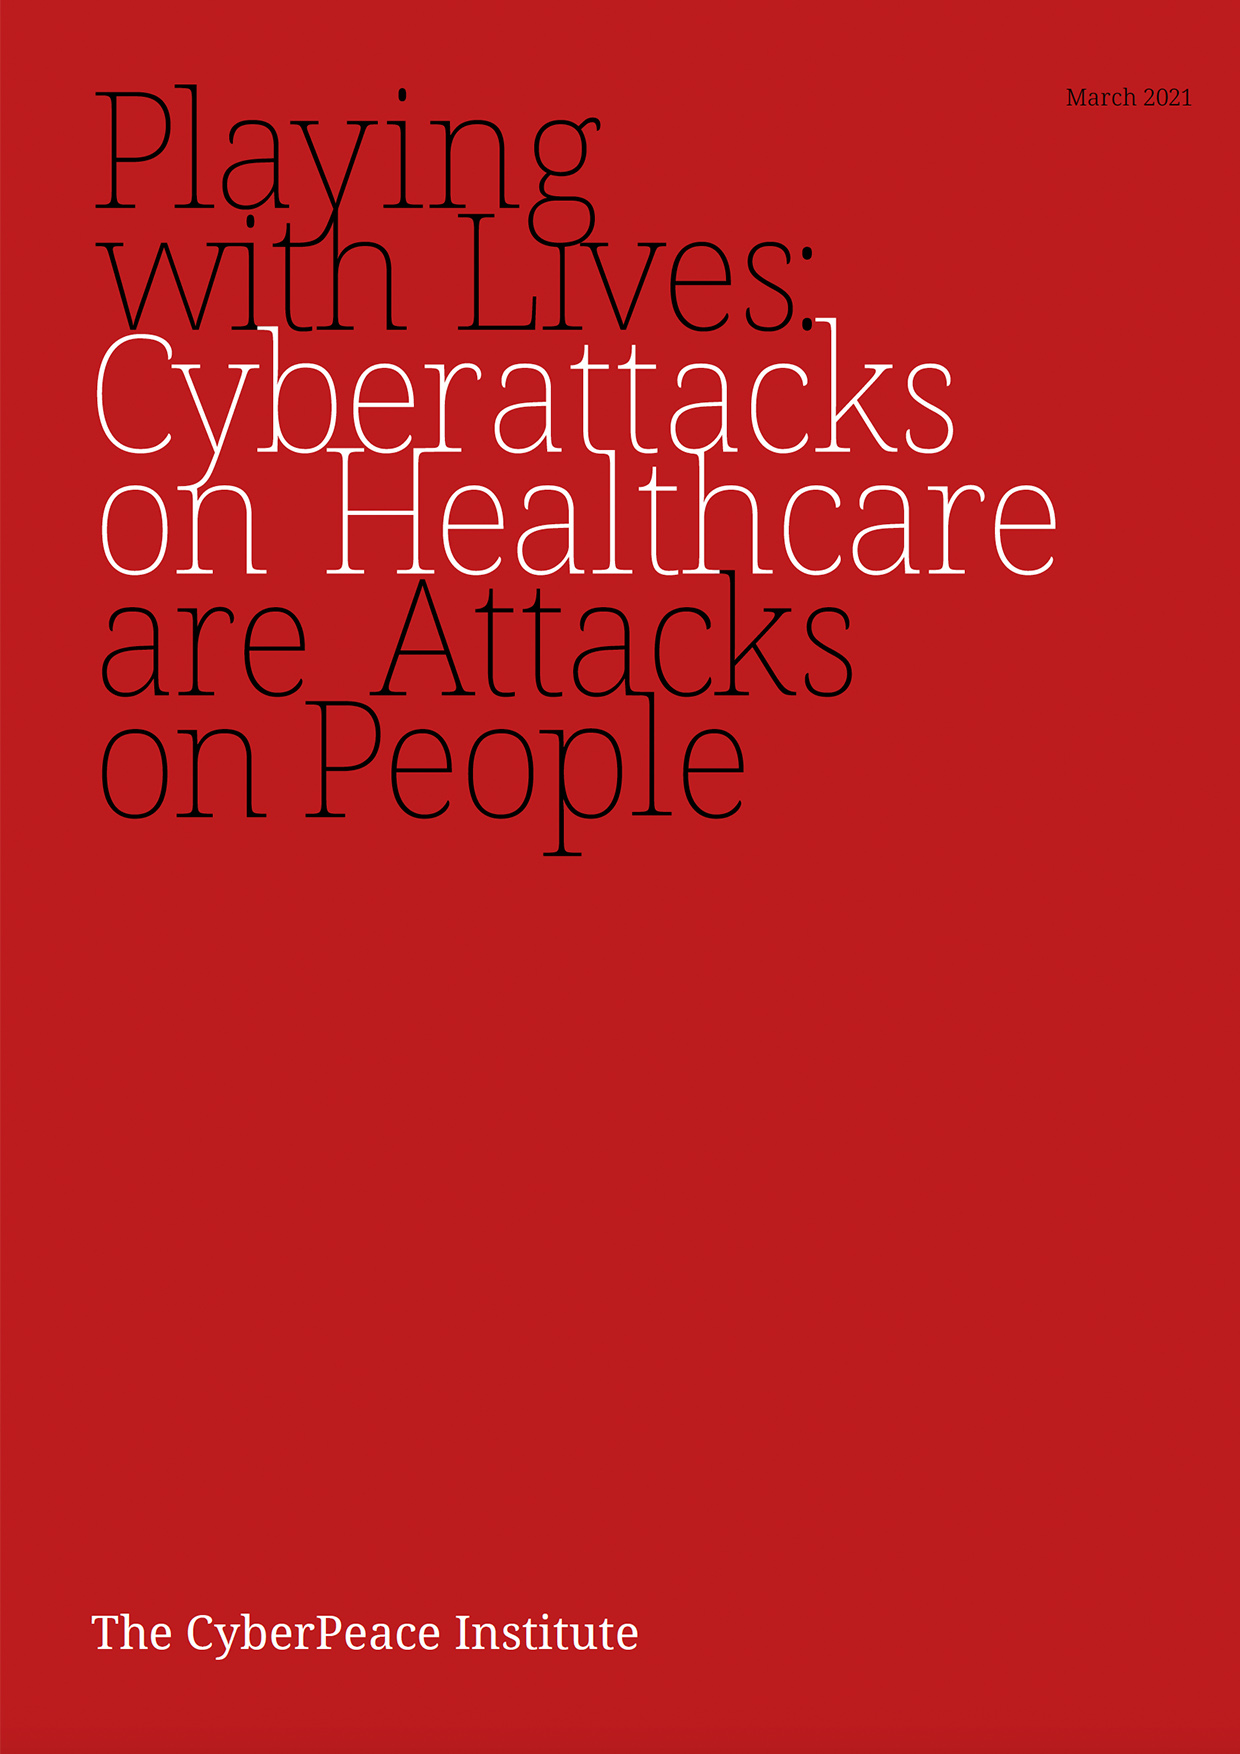 Playing with Lives: Cyberattacks on Healthcare are Attacks on People